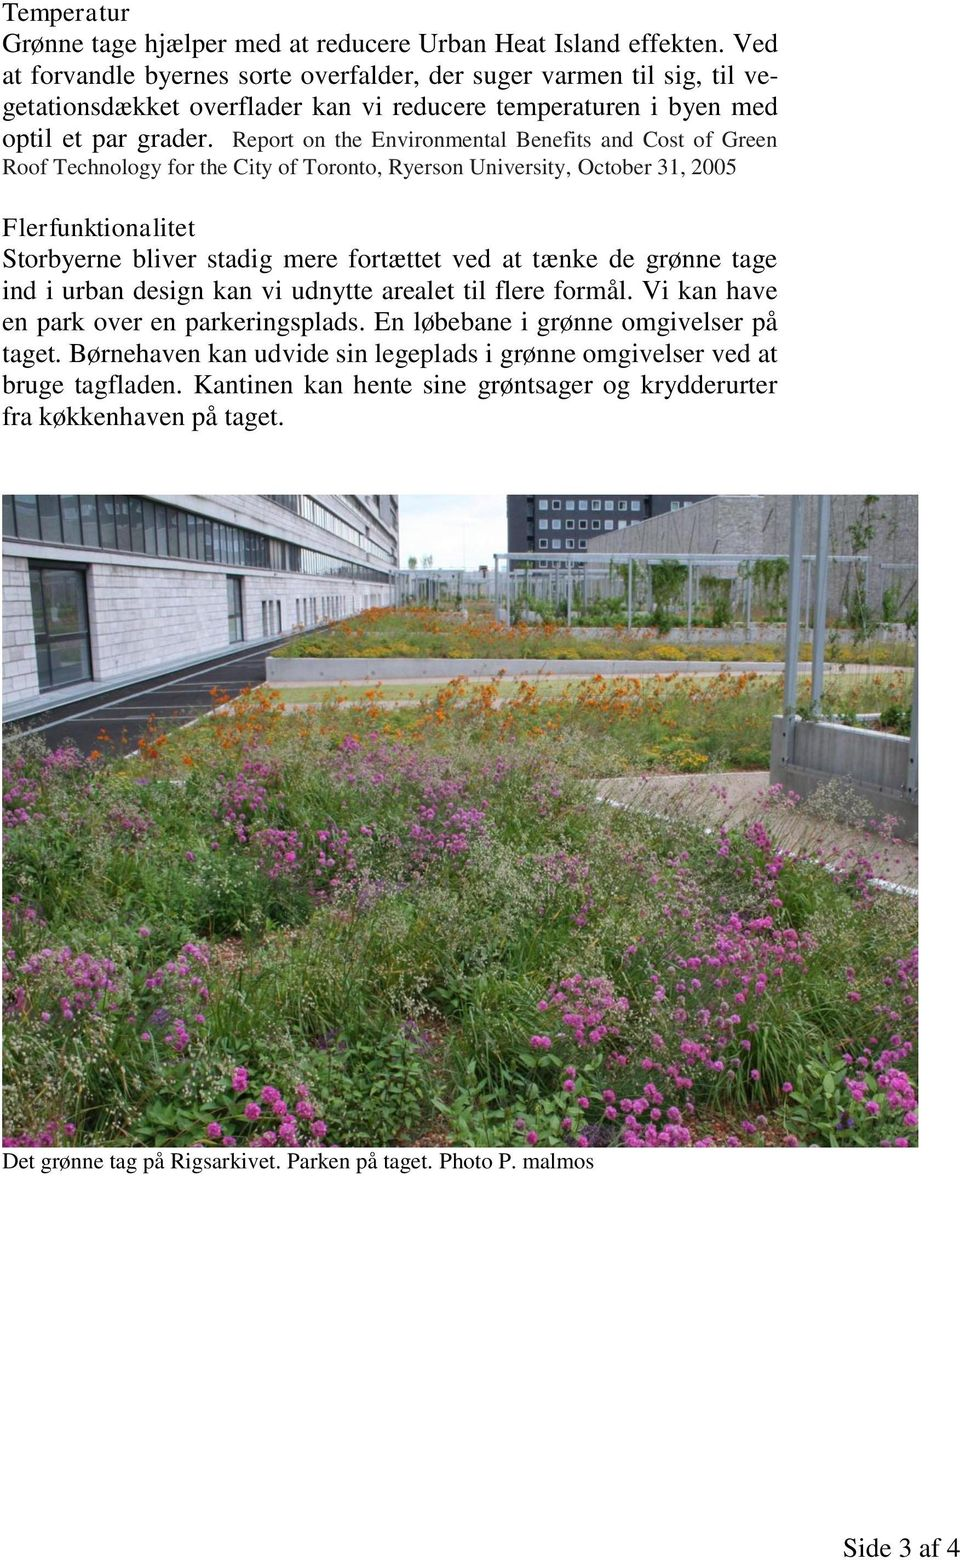 Report on the Environmental Benefits and Cost of Green Roof Technology for the City of Toronto, Ryerson University, October 31, 2005 Flerfunktionalitet Storbyerne bliver stadig mere fortættet ved at